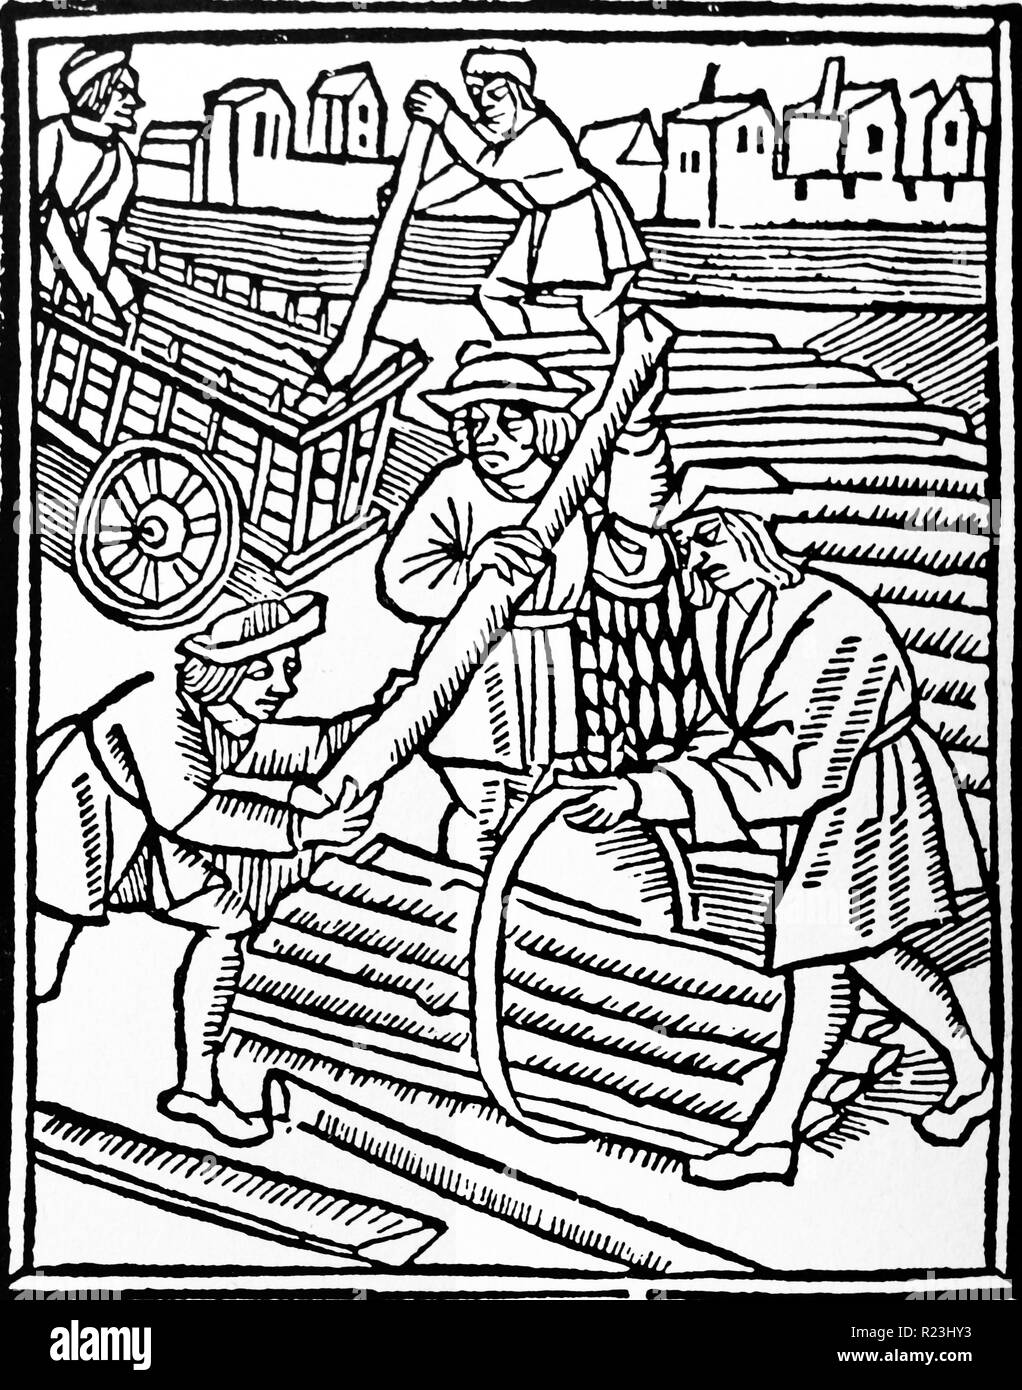 Woodcut depicting the loading of stave timber. Dated 15th Century - Stock Image